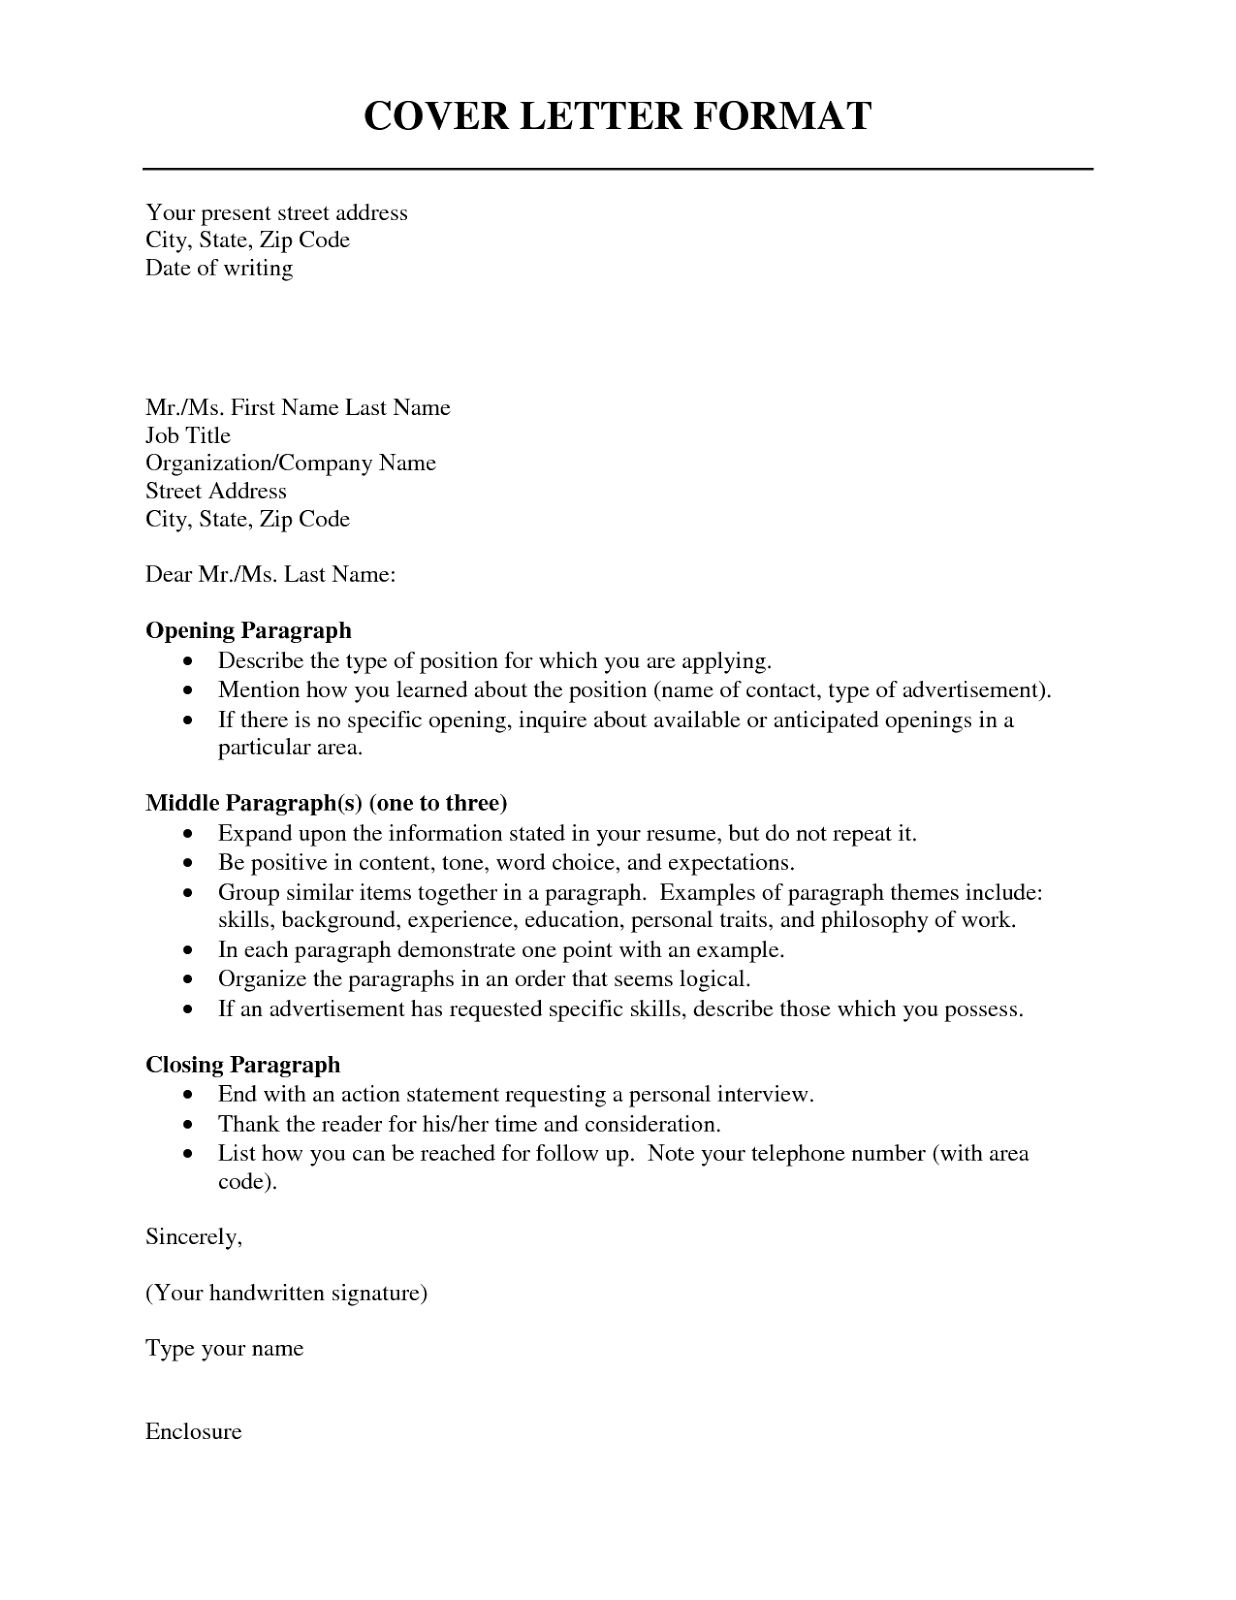 cover letter follow up statement - Zohre.horizonconsulting.co